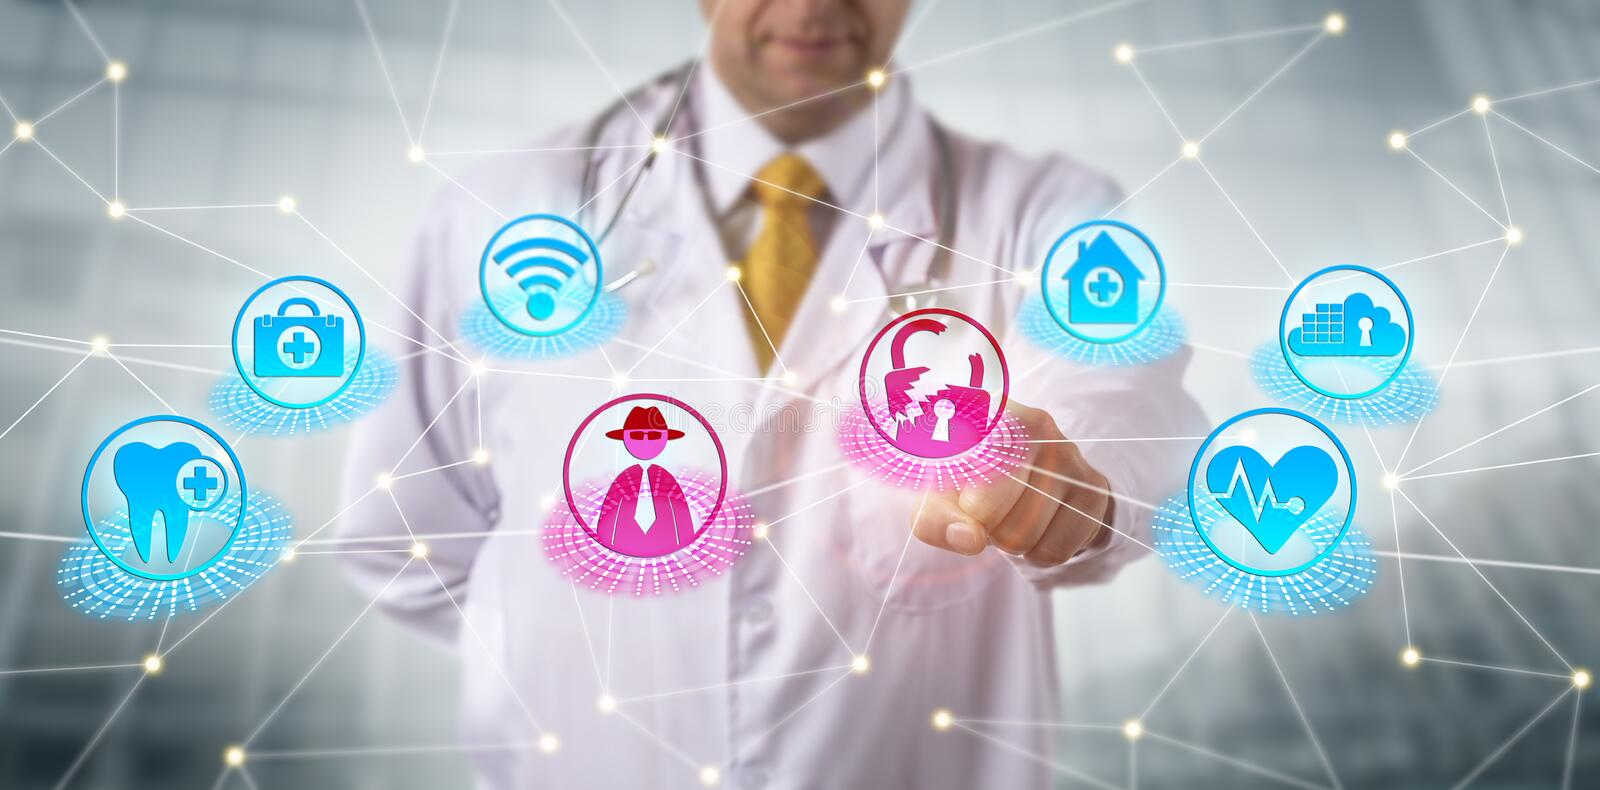 Clinician Subjected To Advanced Persistent Threat. Unrecognizable clinician subjected to an advanced persistent threat at an access point to a healthcare data royalty free stock image